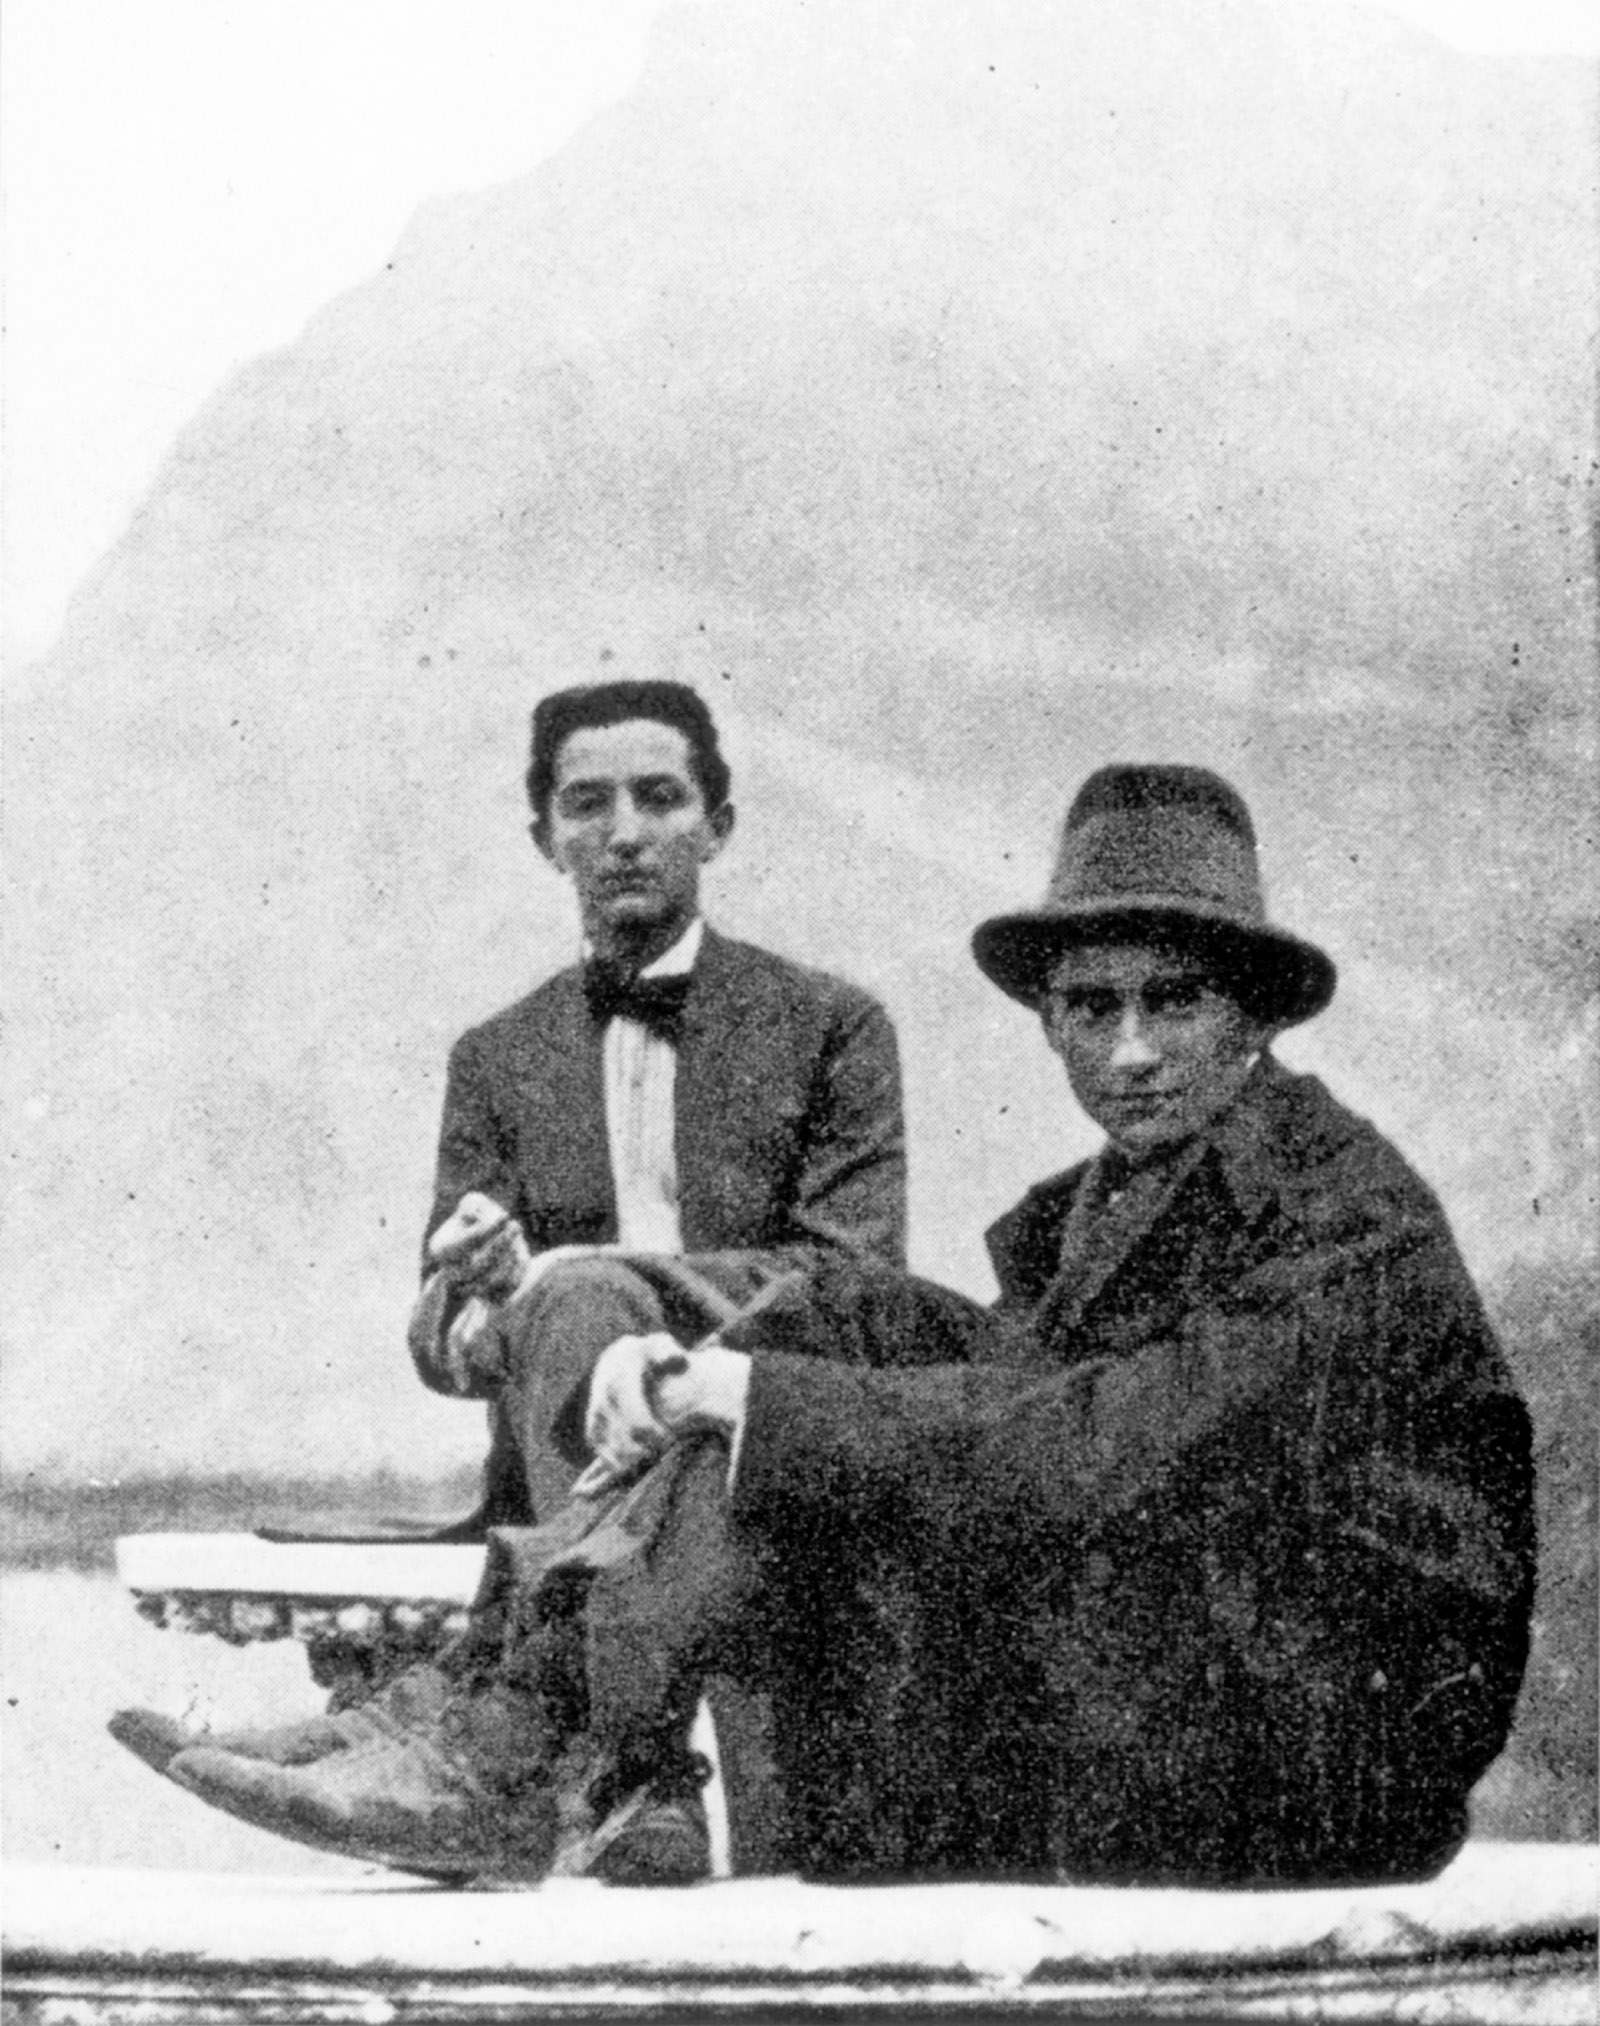 Franz Kafka (right) with Max Brod's younger brother, Otto, at the Castel Toblino near Trento, Italy, 1909